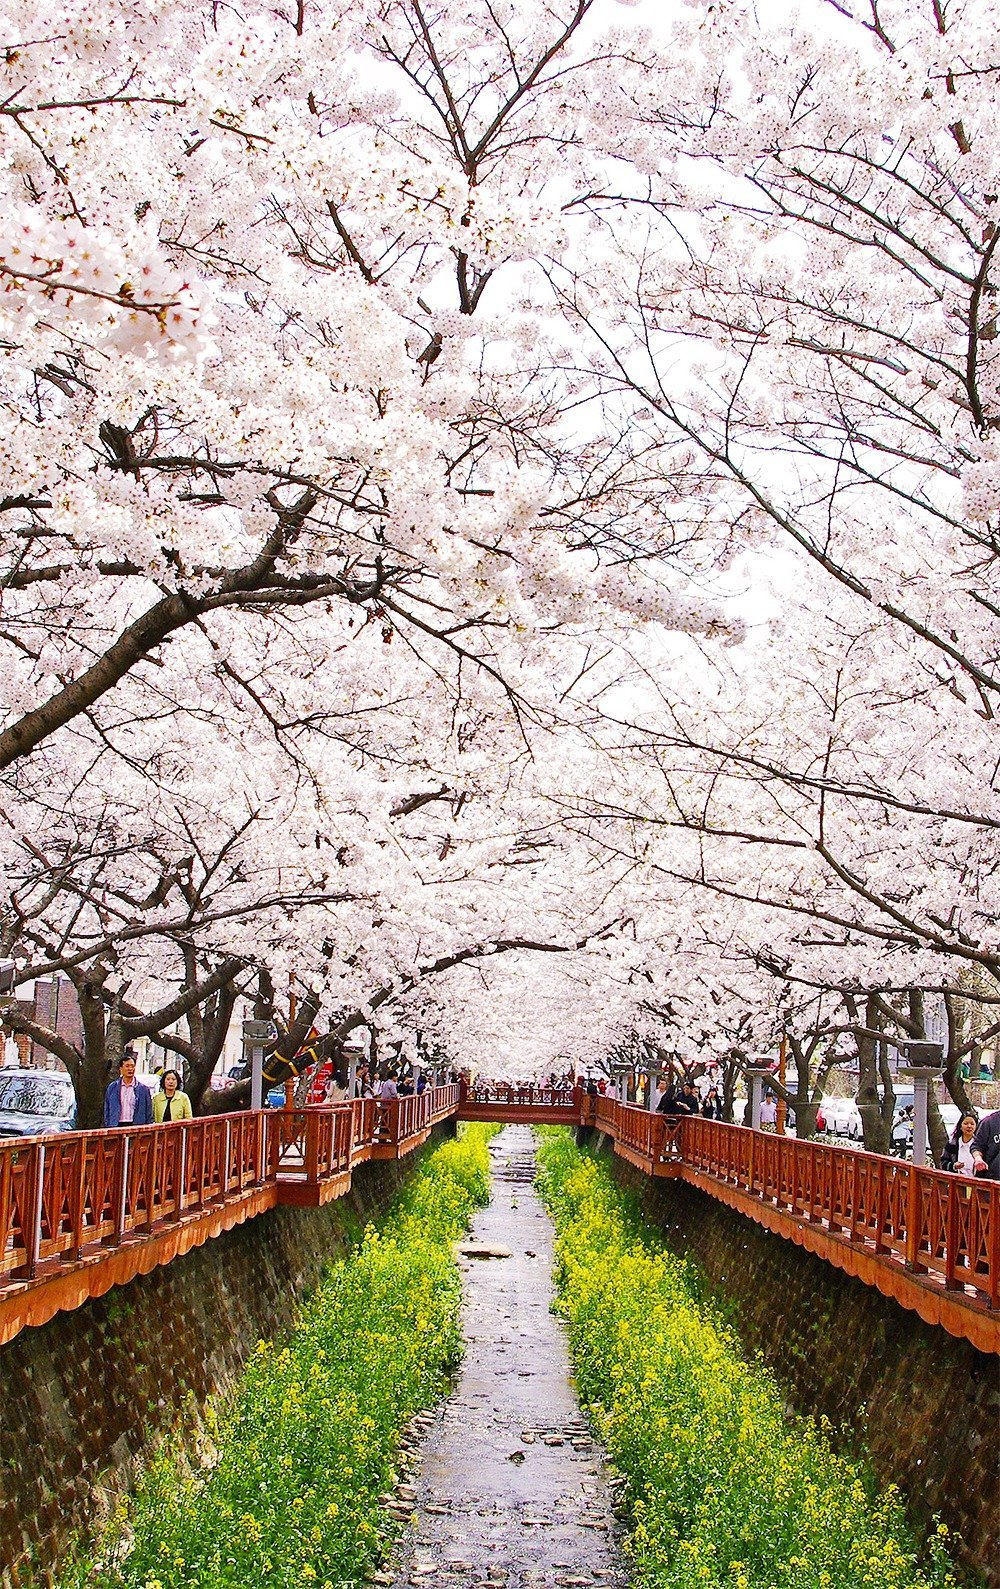 Come spring time, make your way to Jinhae, the home of South Korea's biggest cherry blossom festival. Walk along the Yeojwacheon stream and admire the beauty of 300,000 cherry trees in bloom.